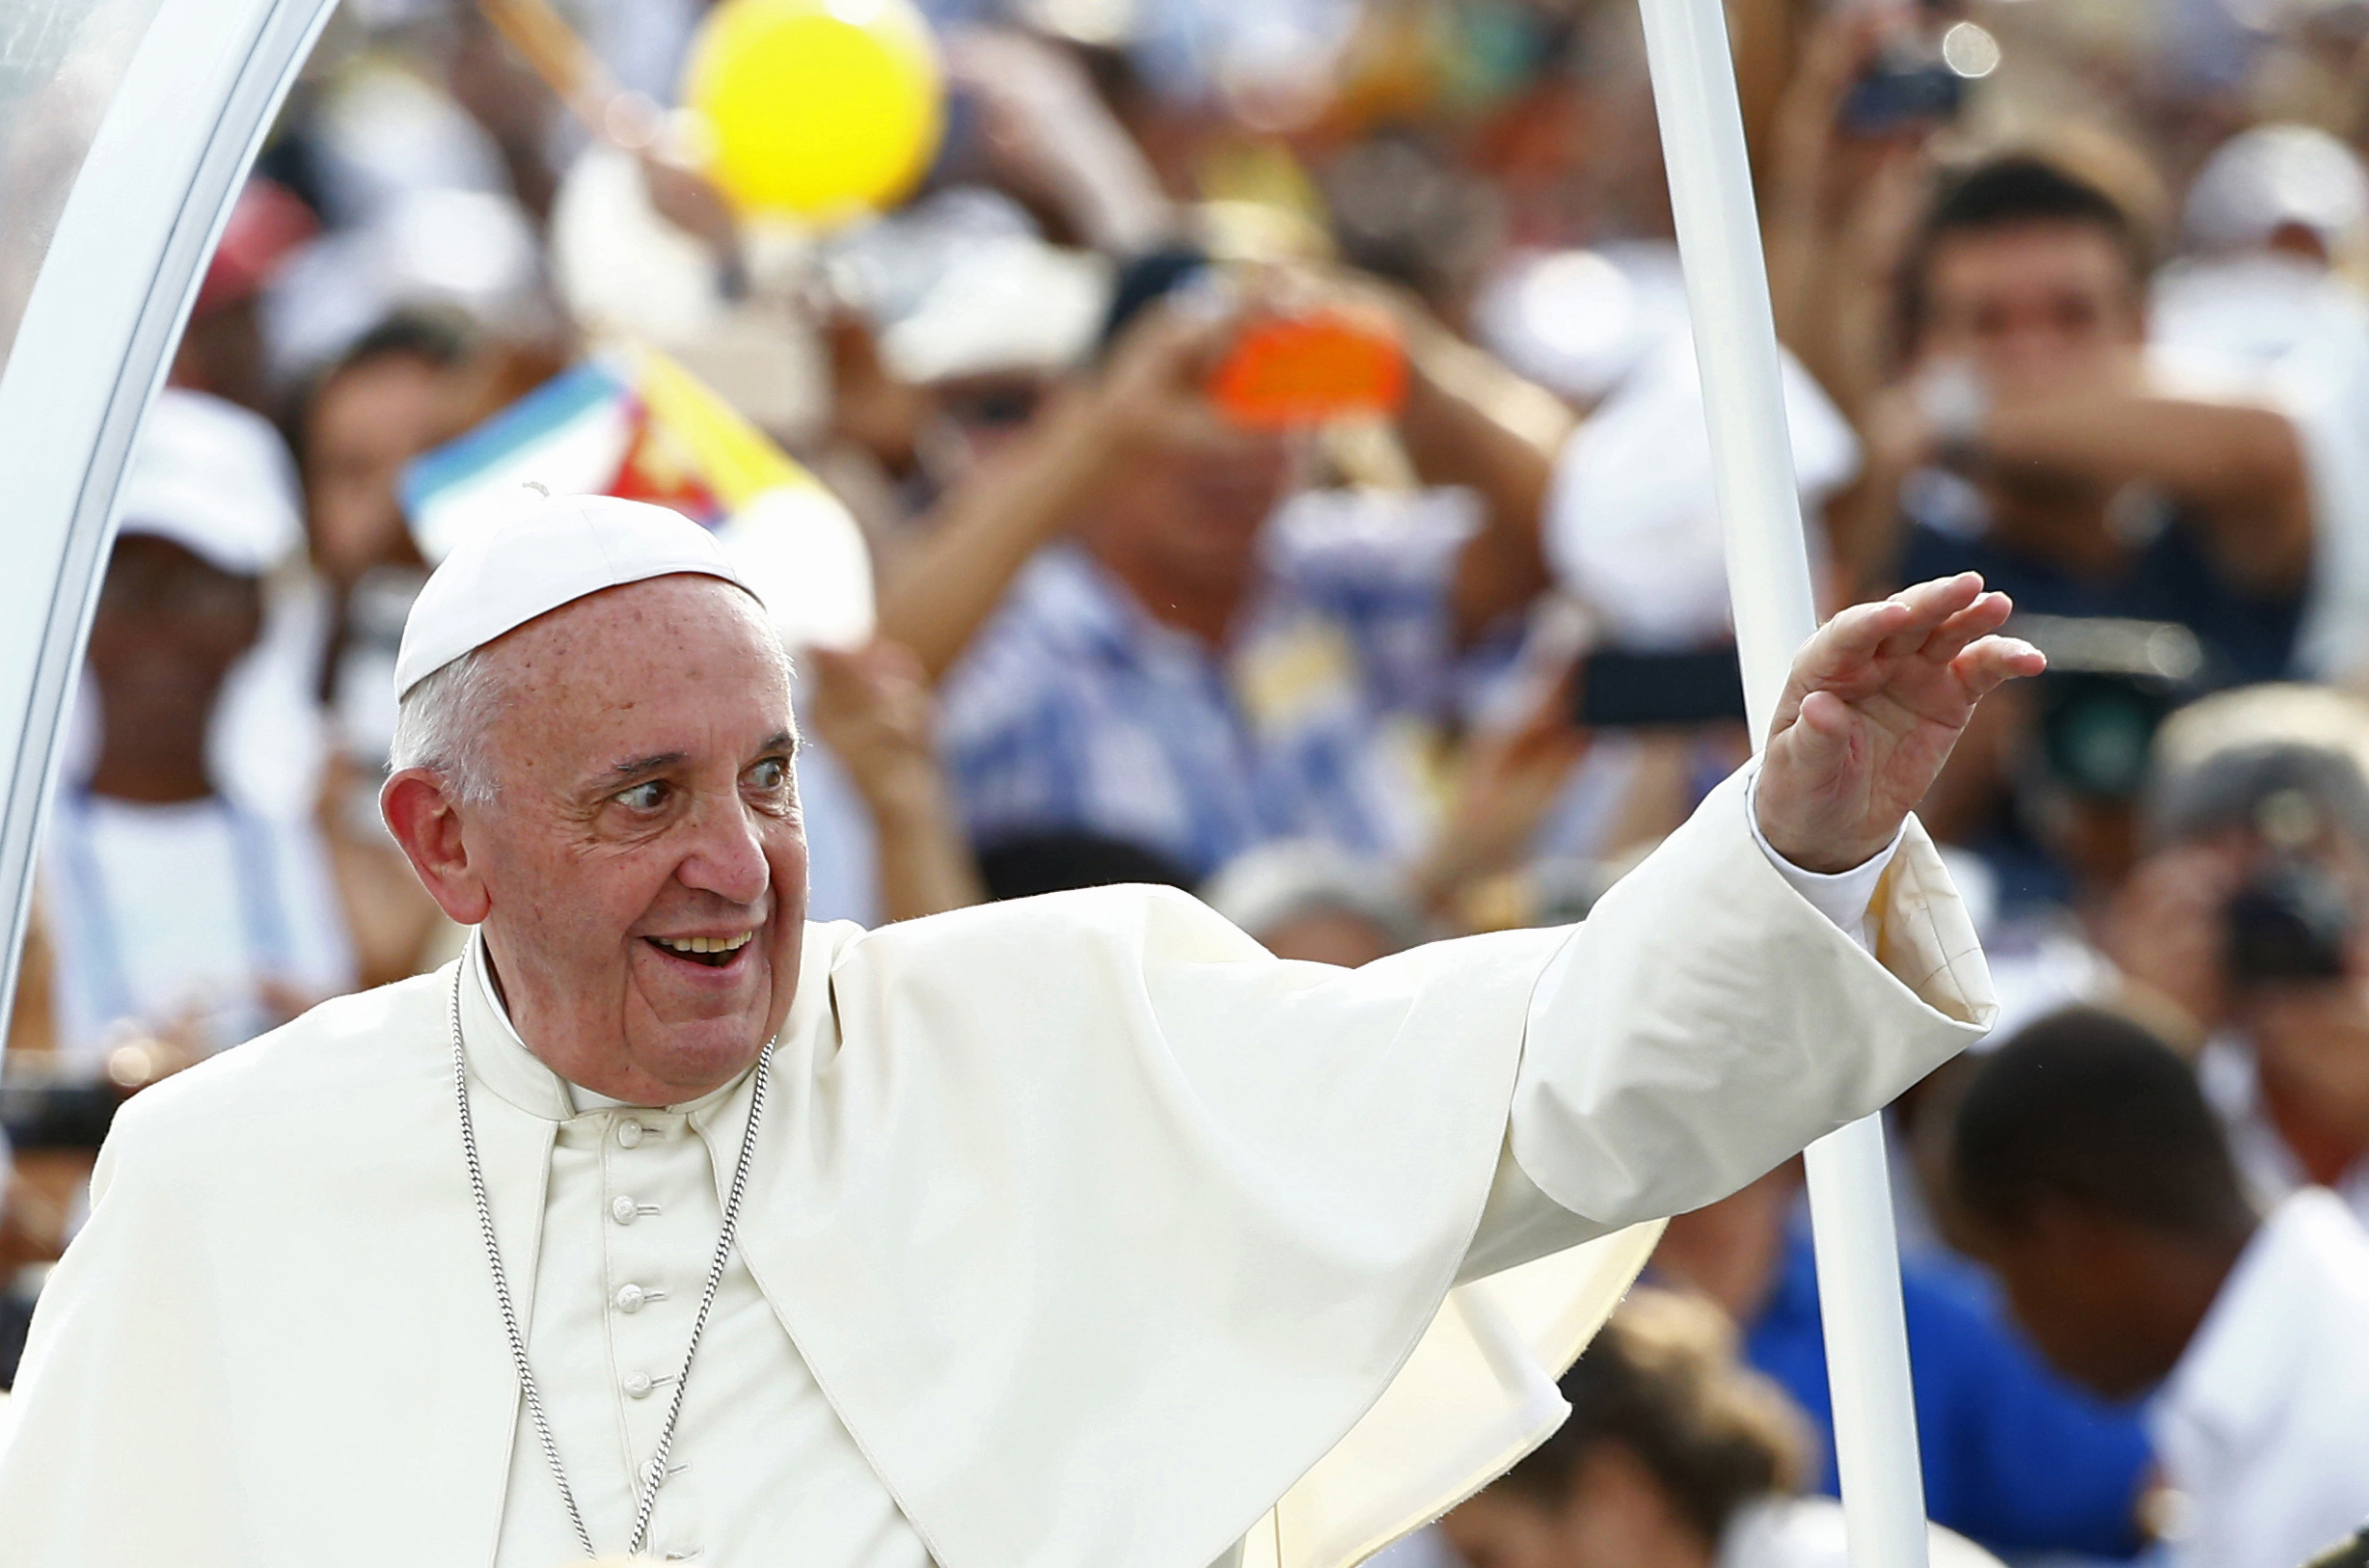 Hassle-free alternatives to get to papal, other events in D.C.